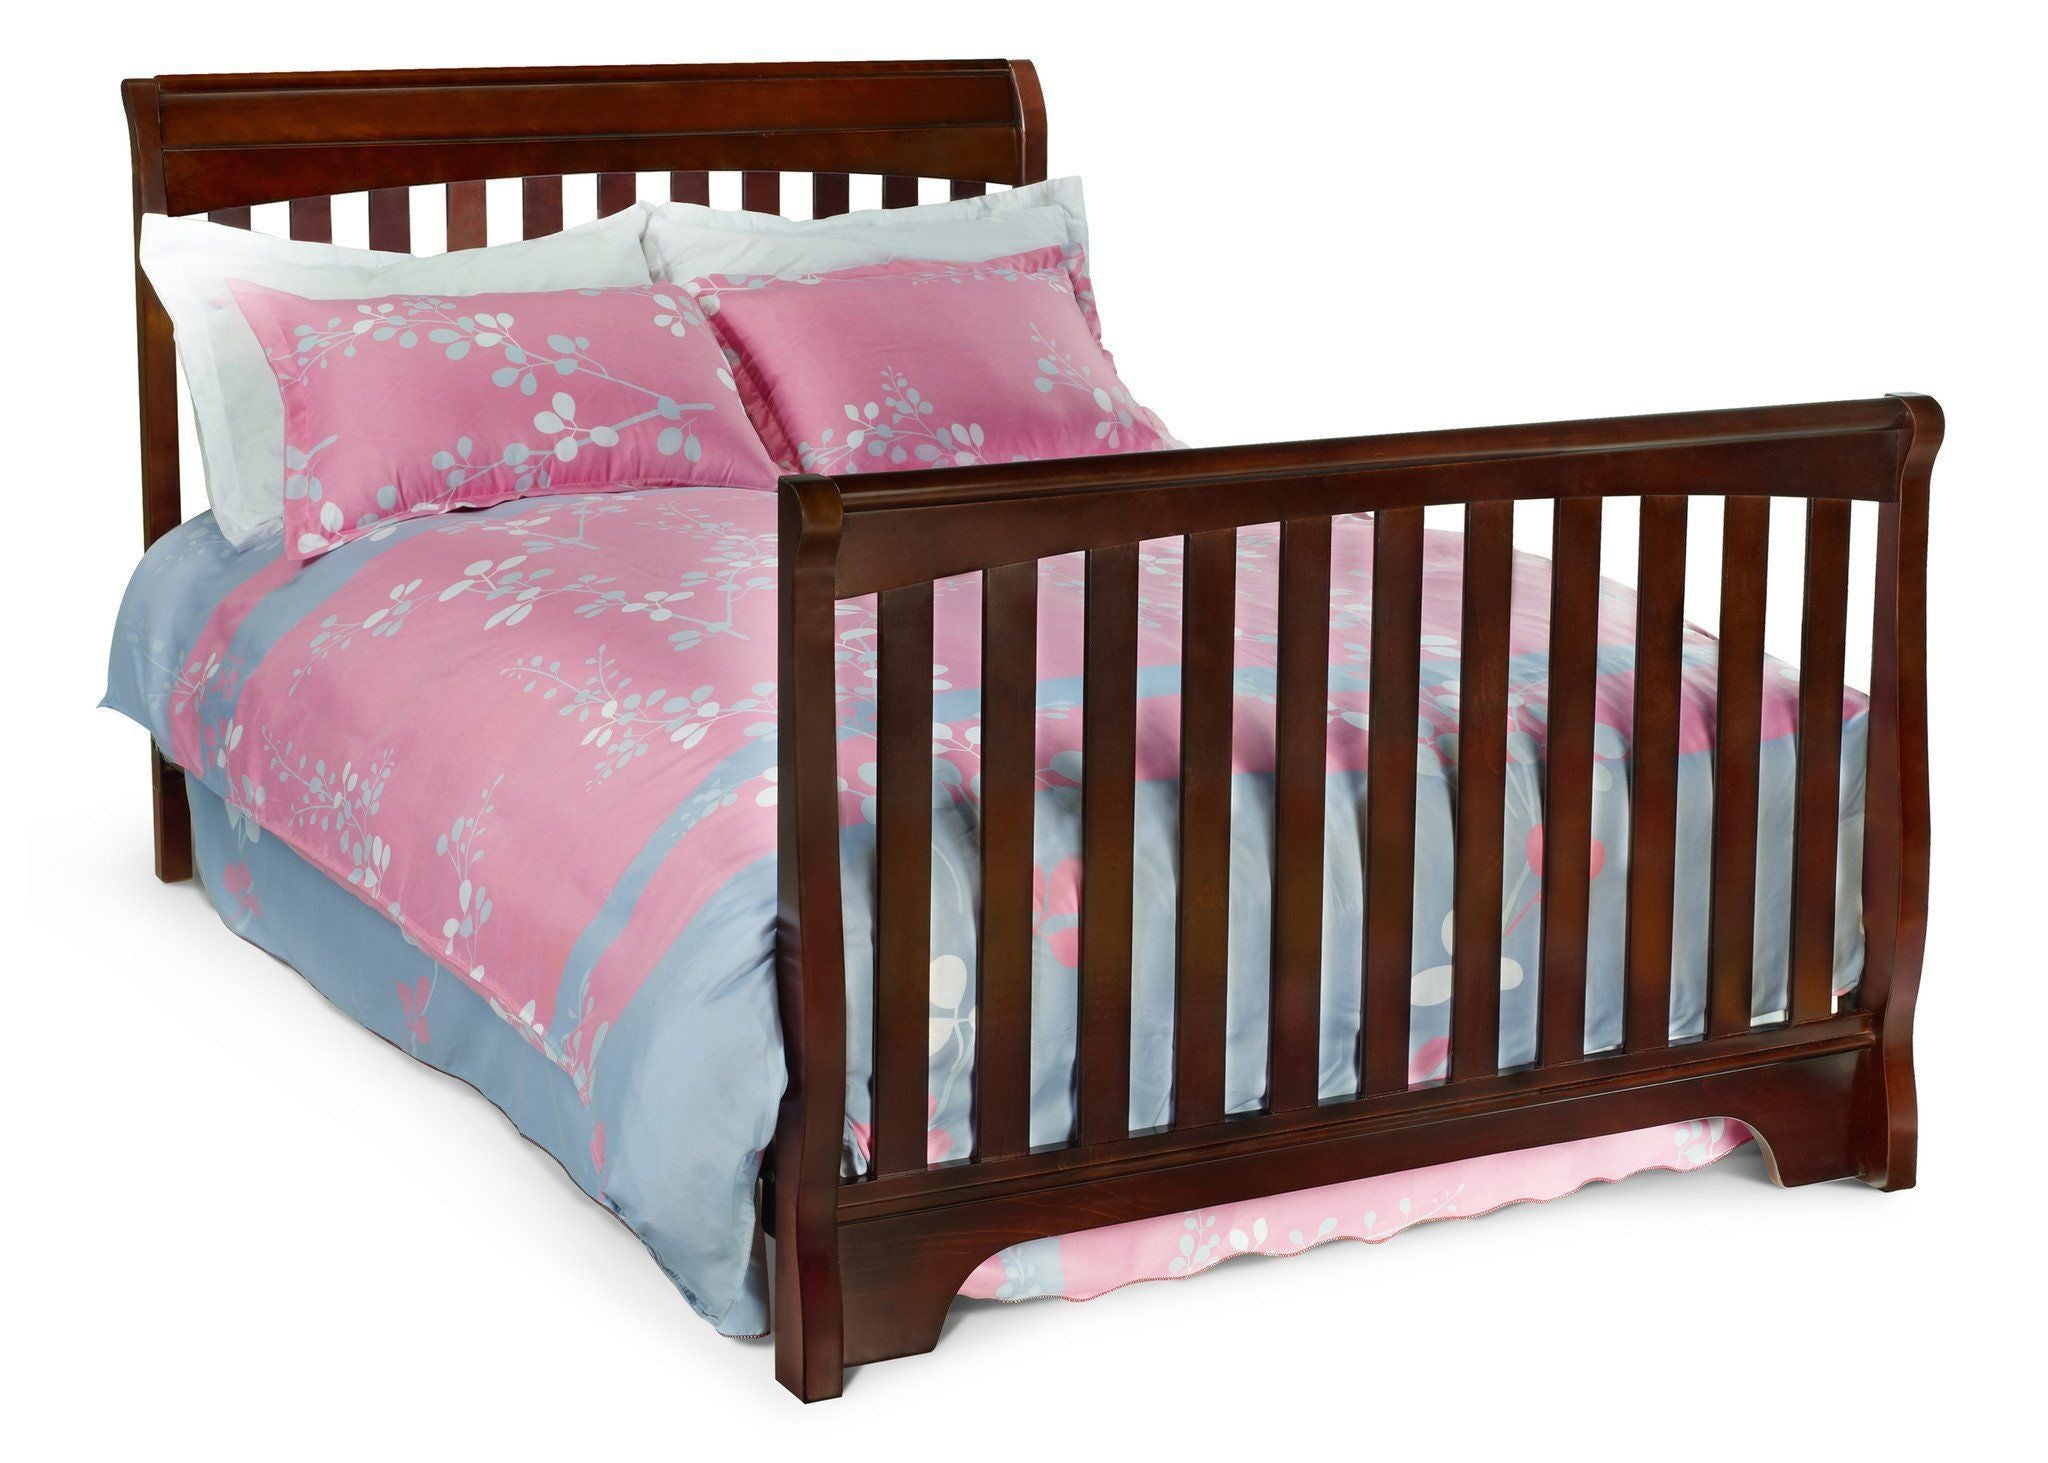 bedding s inflowcomponent chart res in inflow mattress sizes cribs exciting baby cancel global crib content inches size